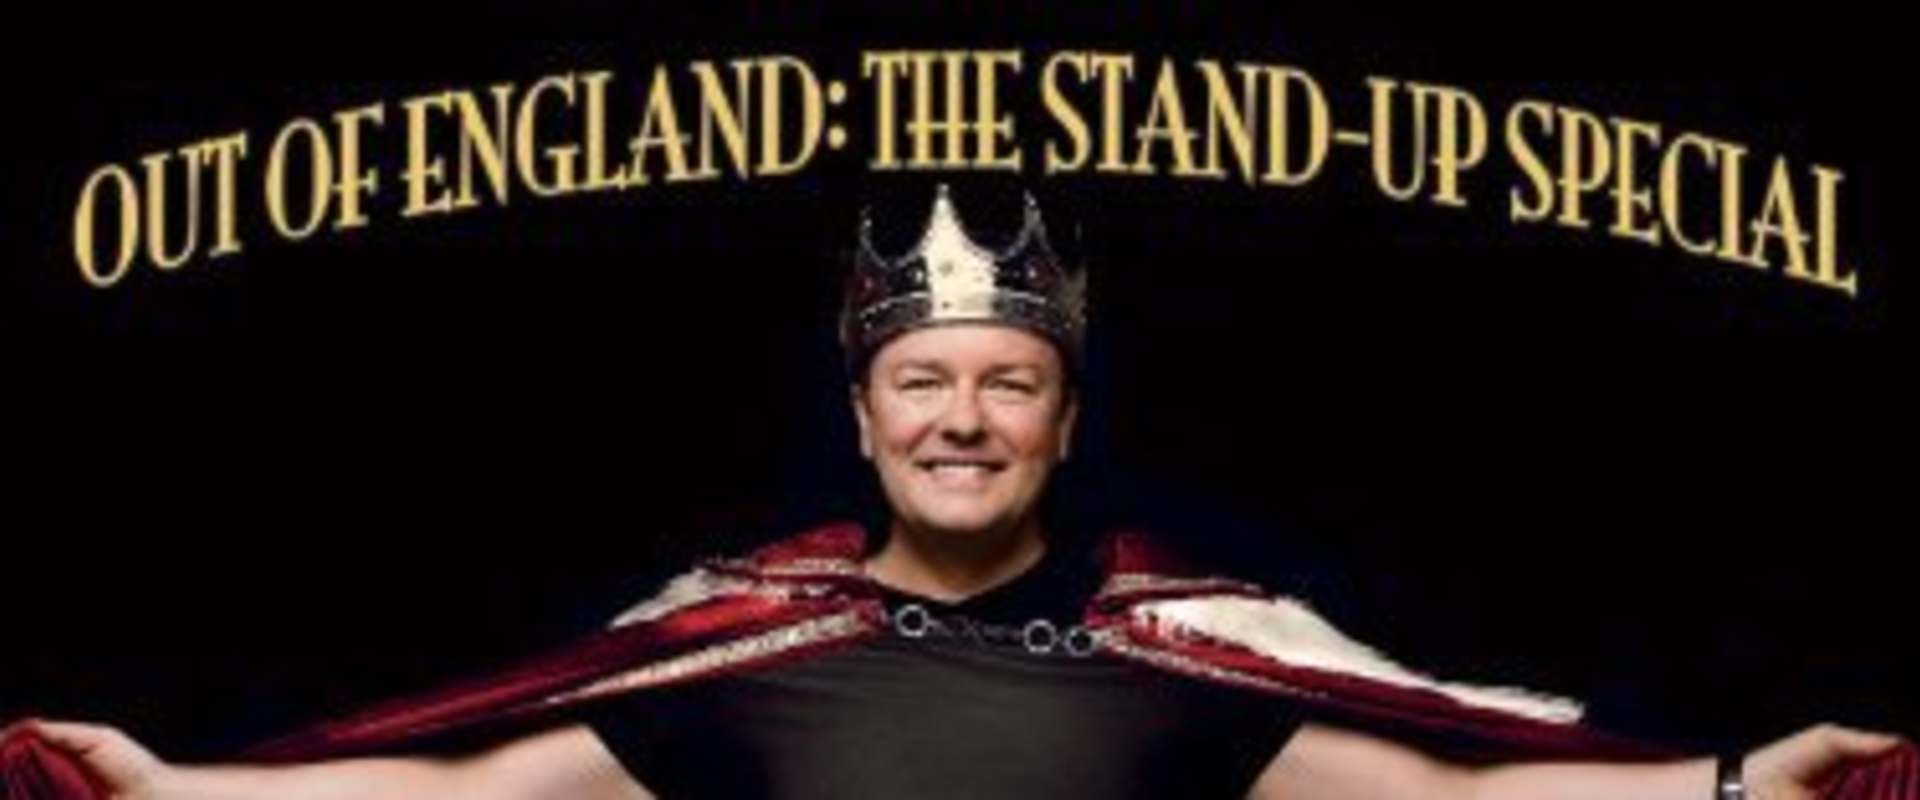 Ricky Gervais: Out of England - The Stand-Up Special background 1